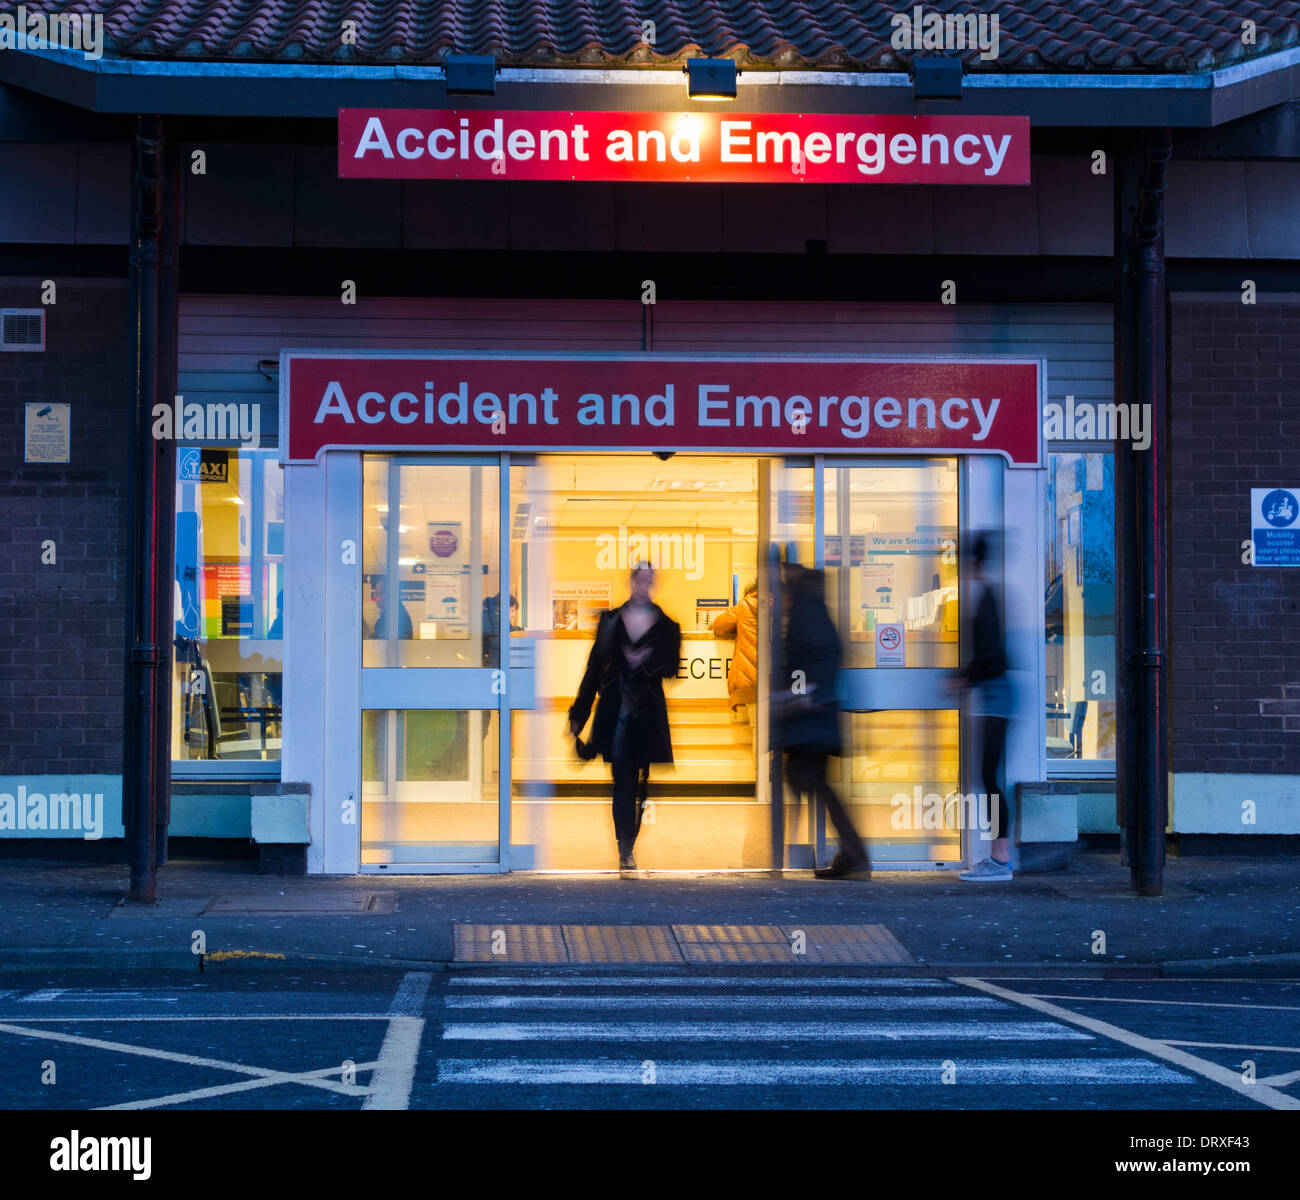 Accident and Emergency/a&e at University Hospital of North Tees, Hardwick Rd, Stockton on Tees, England, UK - Stock Image